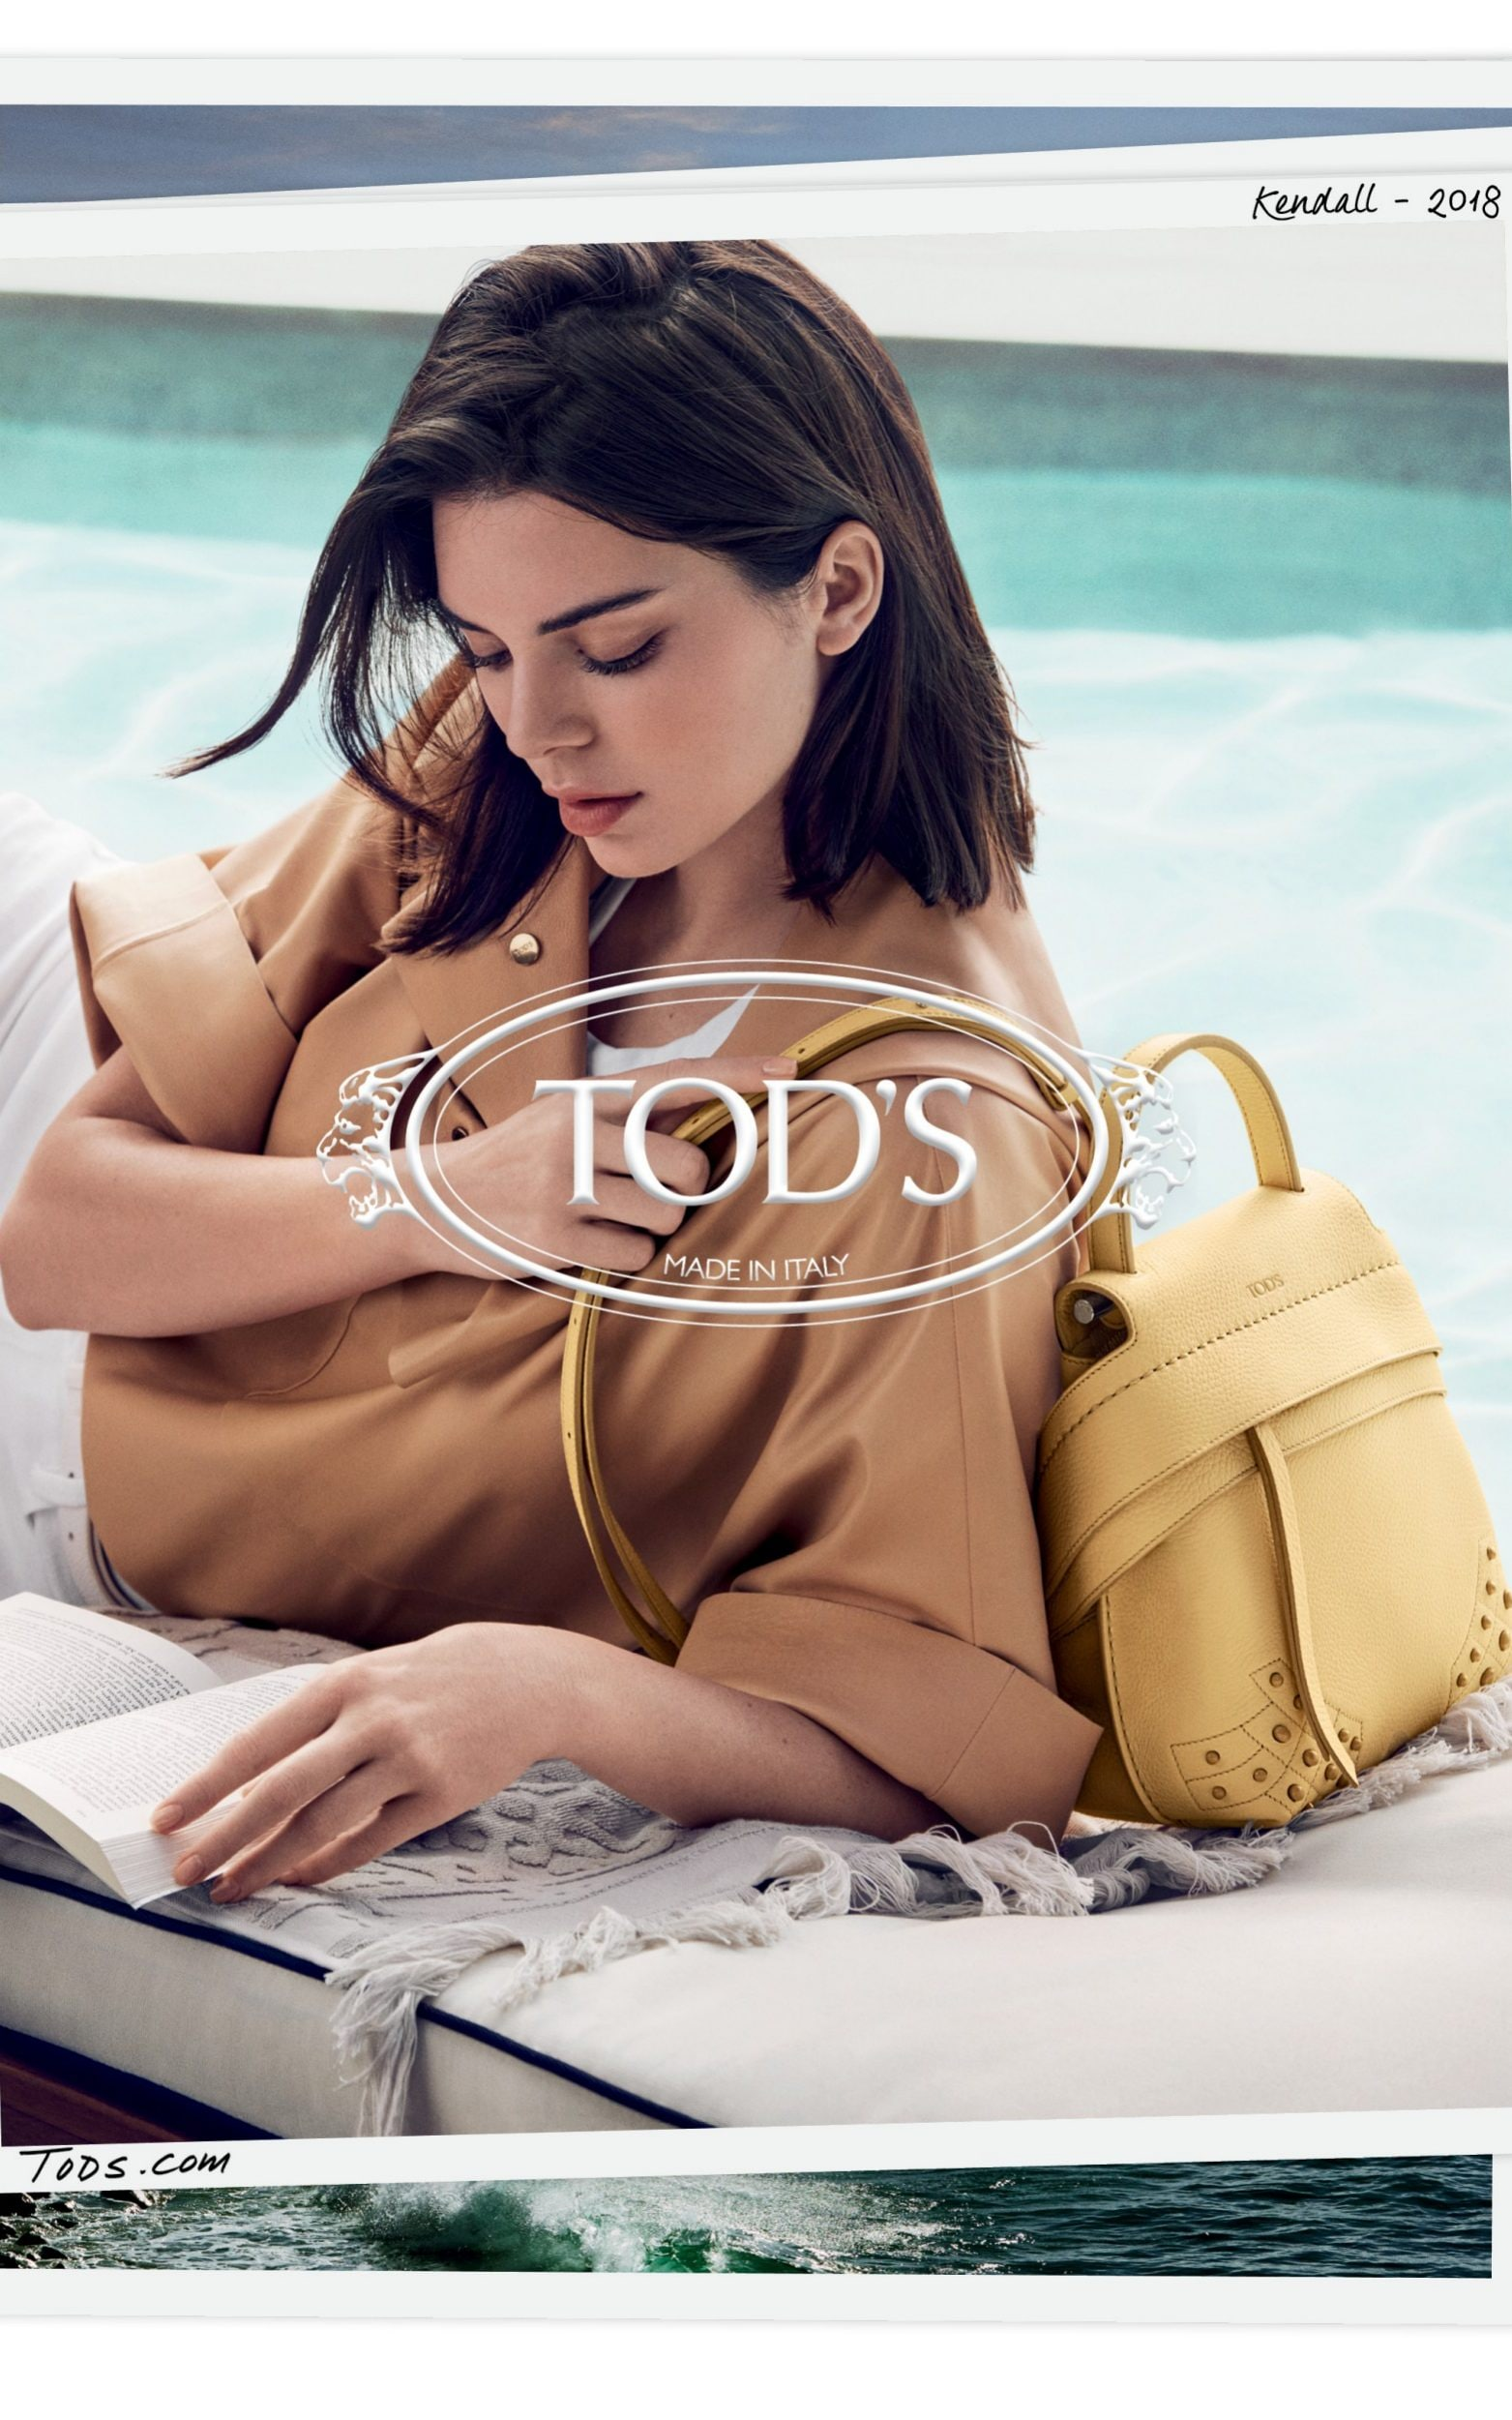 Kendall Jenner for the Tod's Spring/Summer 2018 campaign